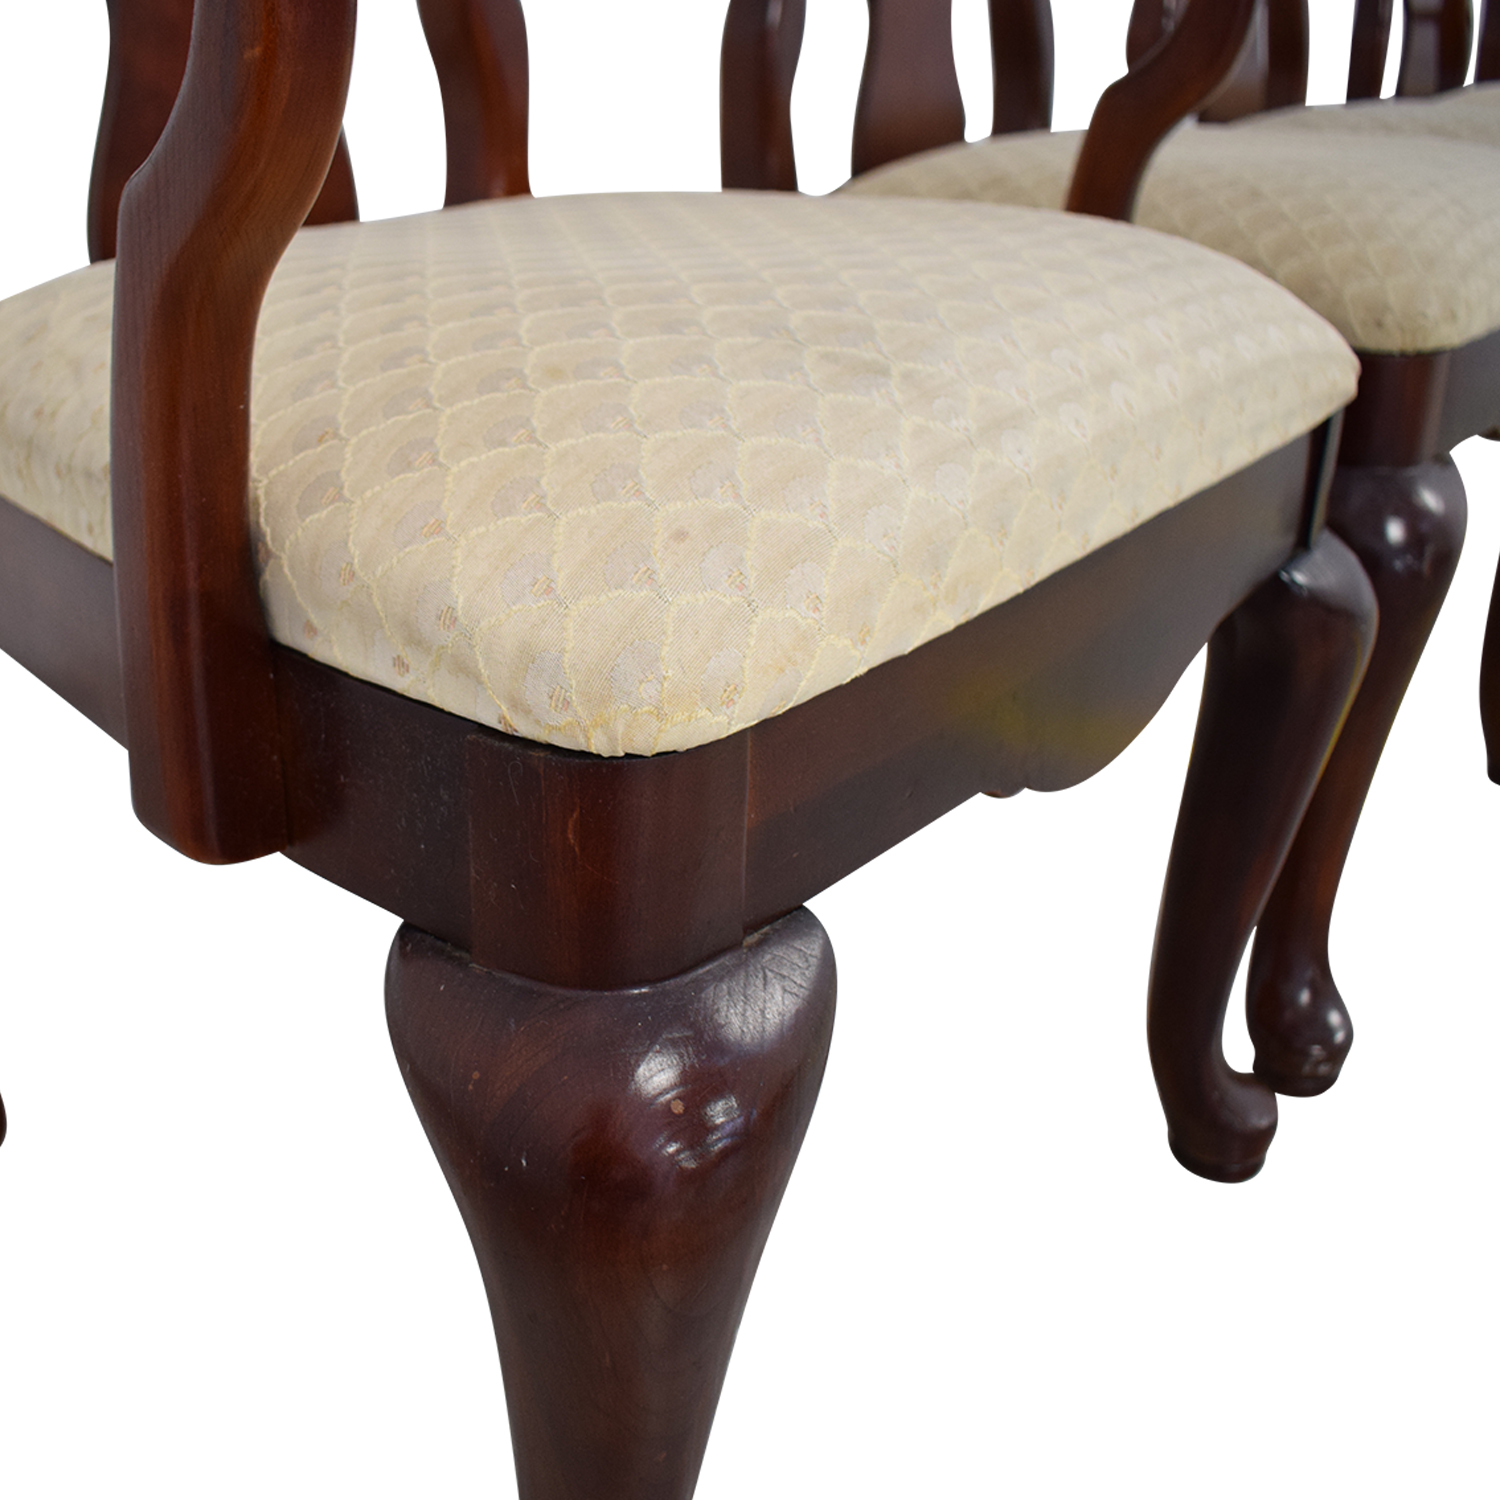 shop Thomasville Thomasville Traditional Queen Anne Style Dining Chairs online